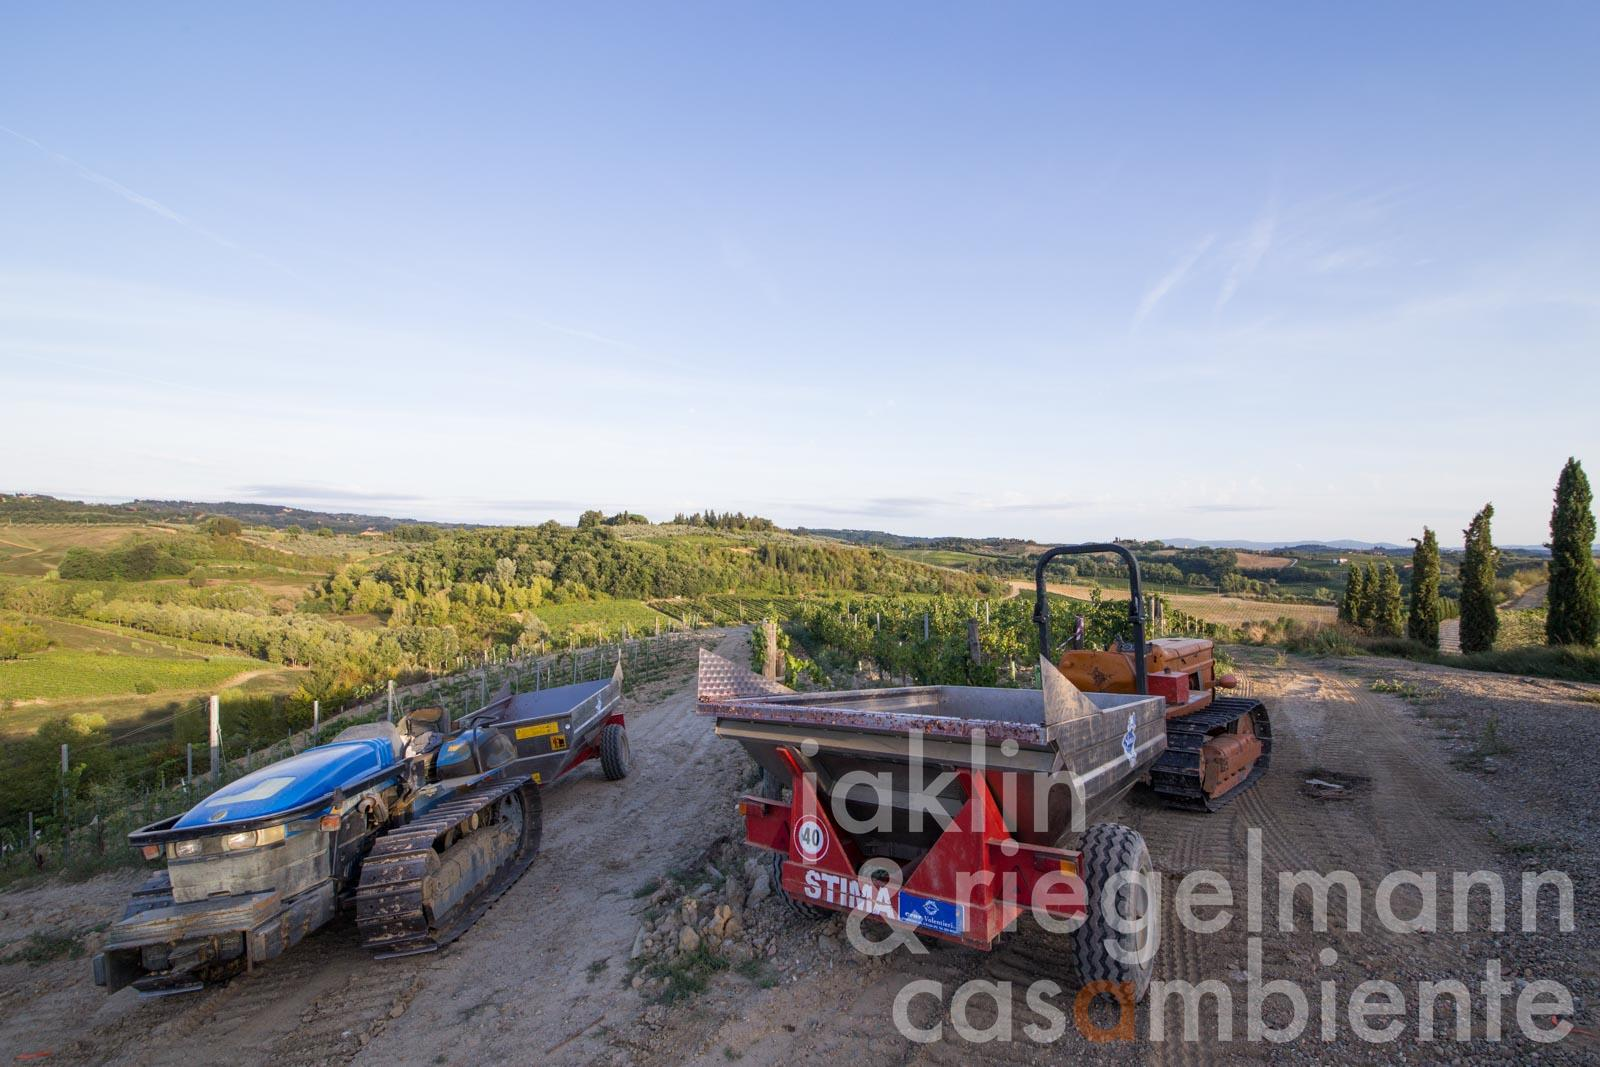 Organic agricultural business for sale in Tuscany with agriturismo, restaurant, vineyards and olive groves